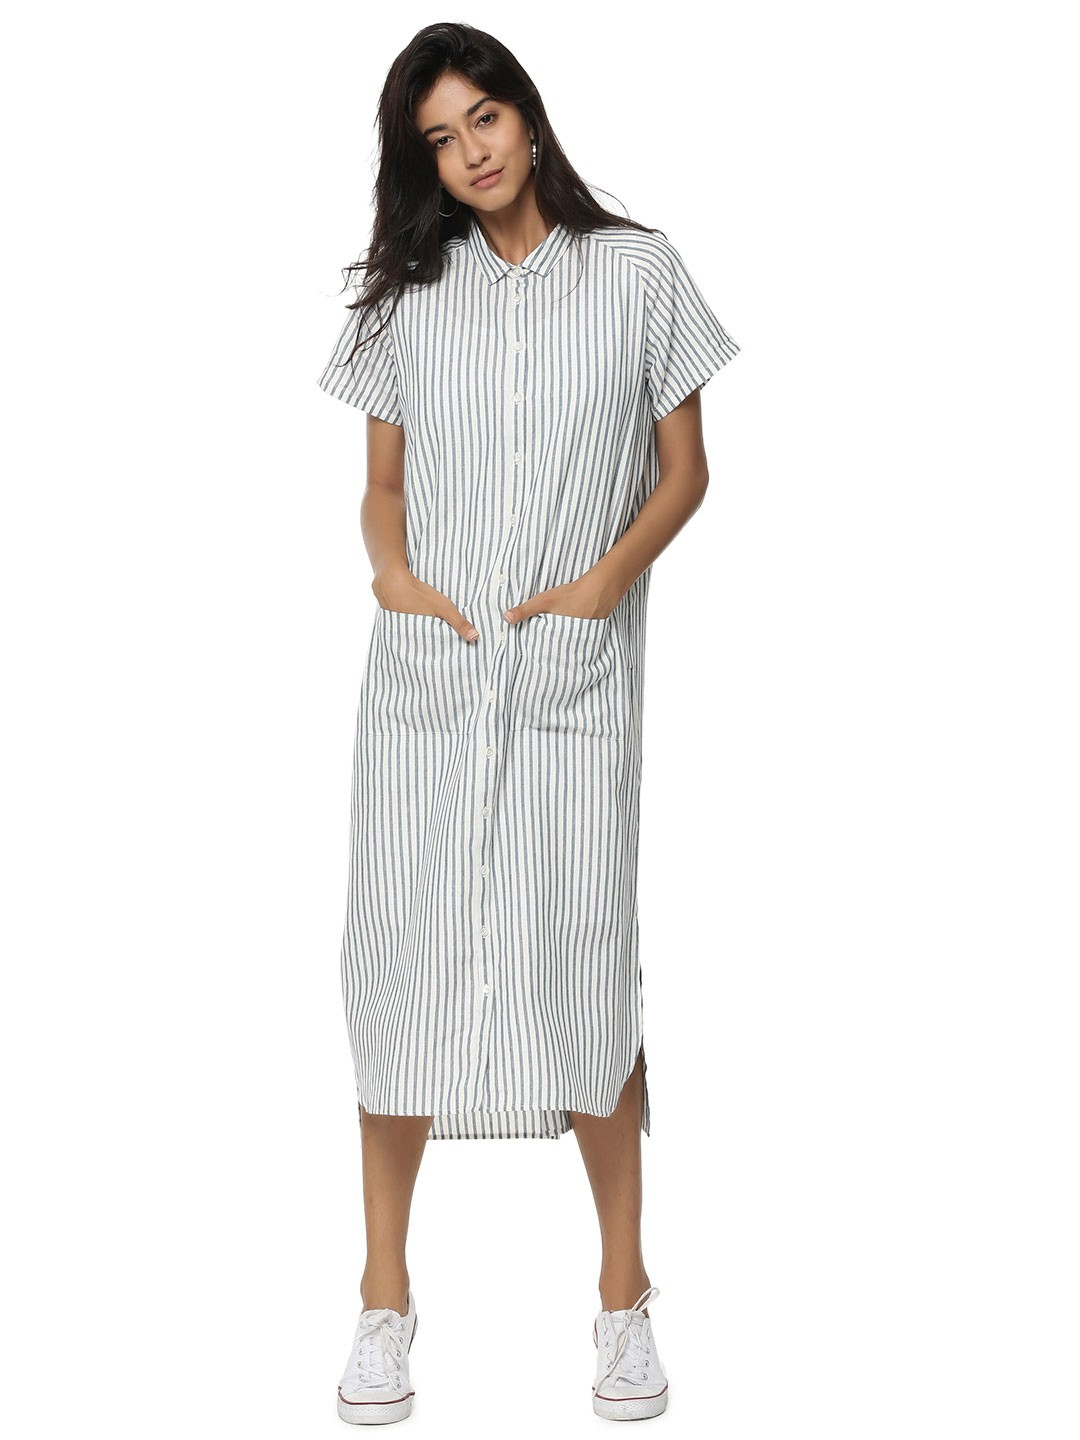 Find great deals on eBay for long white shirt dress. Shop with confidence.